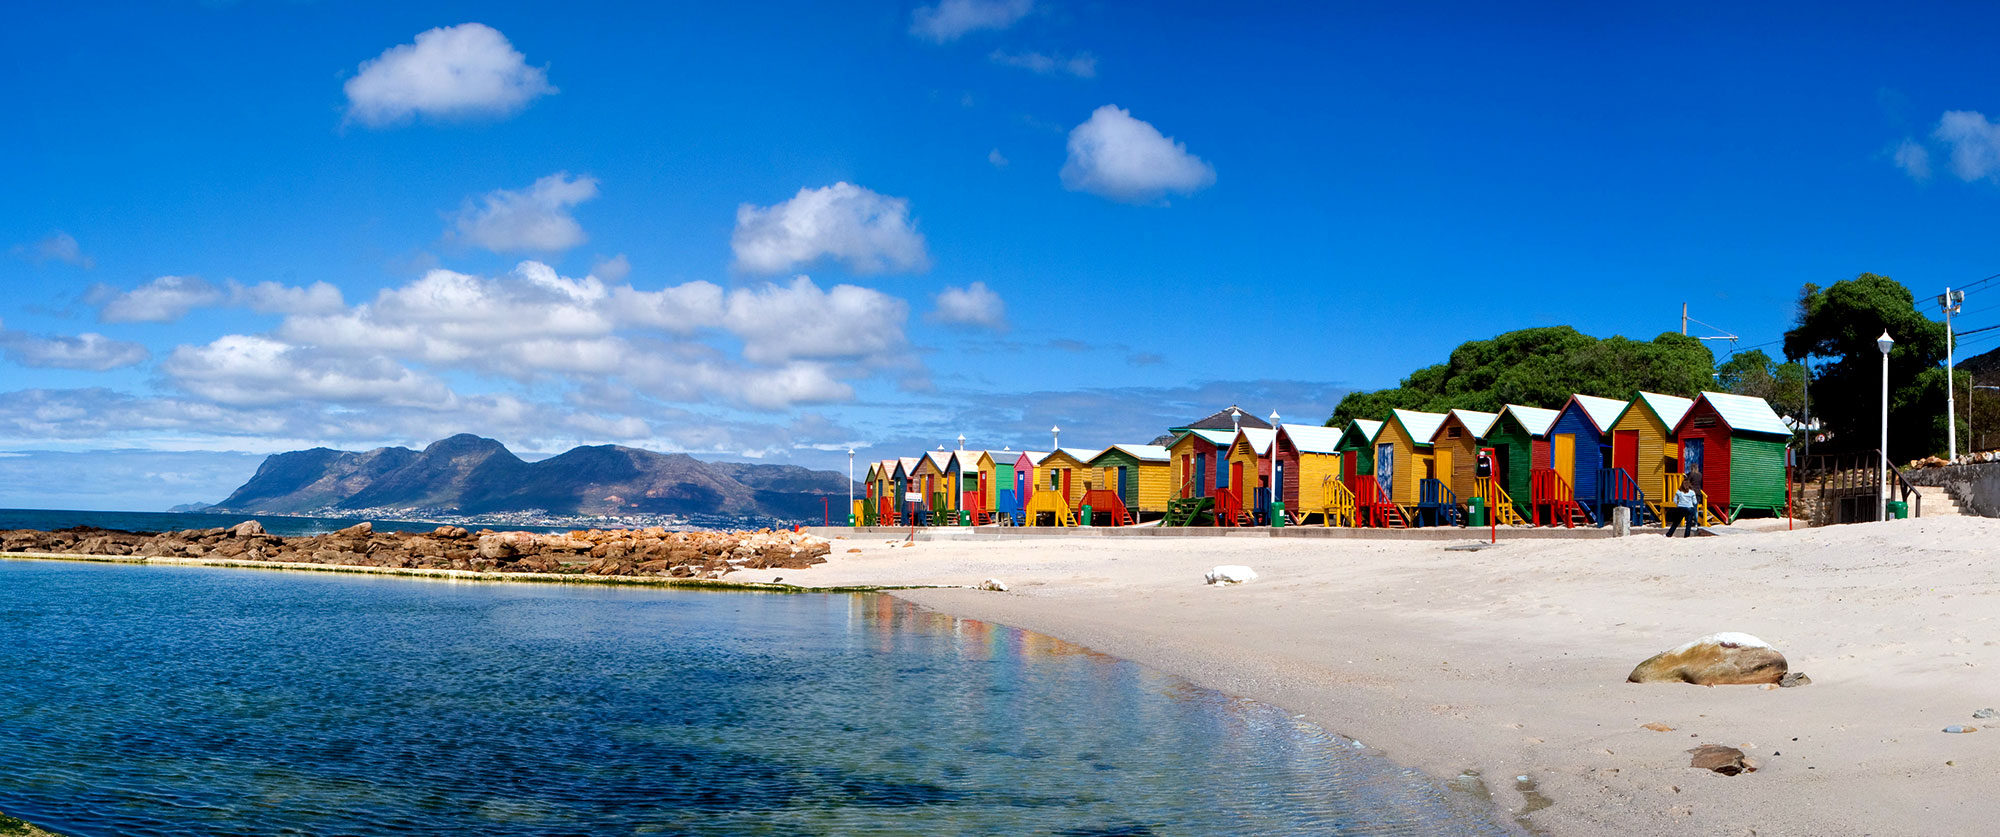 South Africa-Mozambique - Africa luxury vacation packages